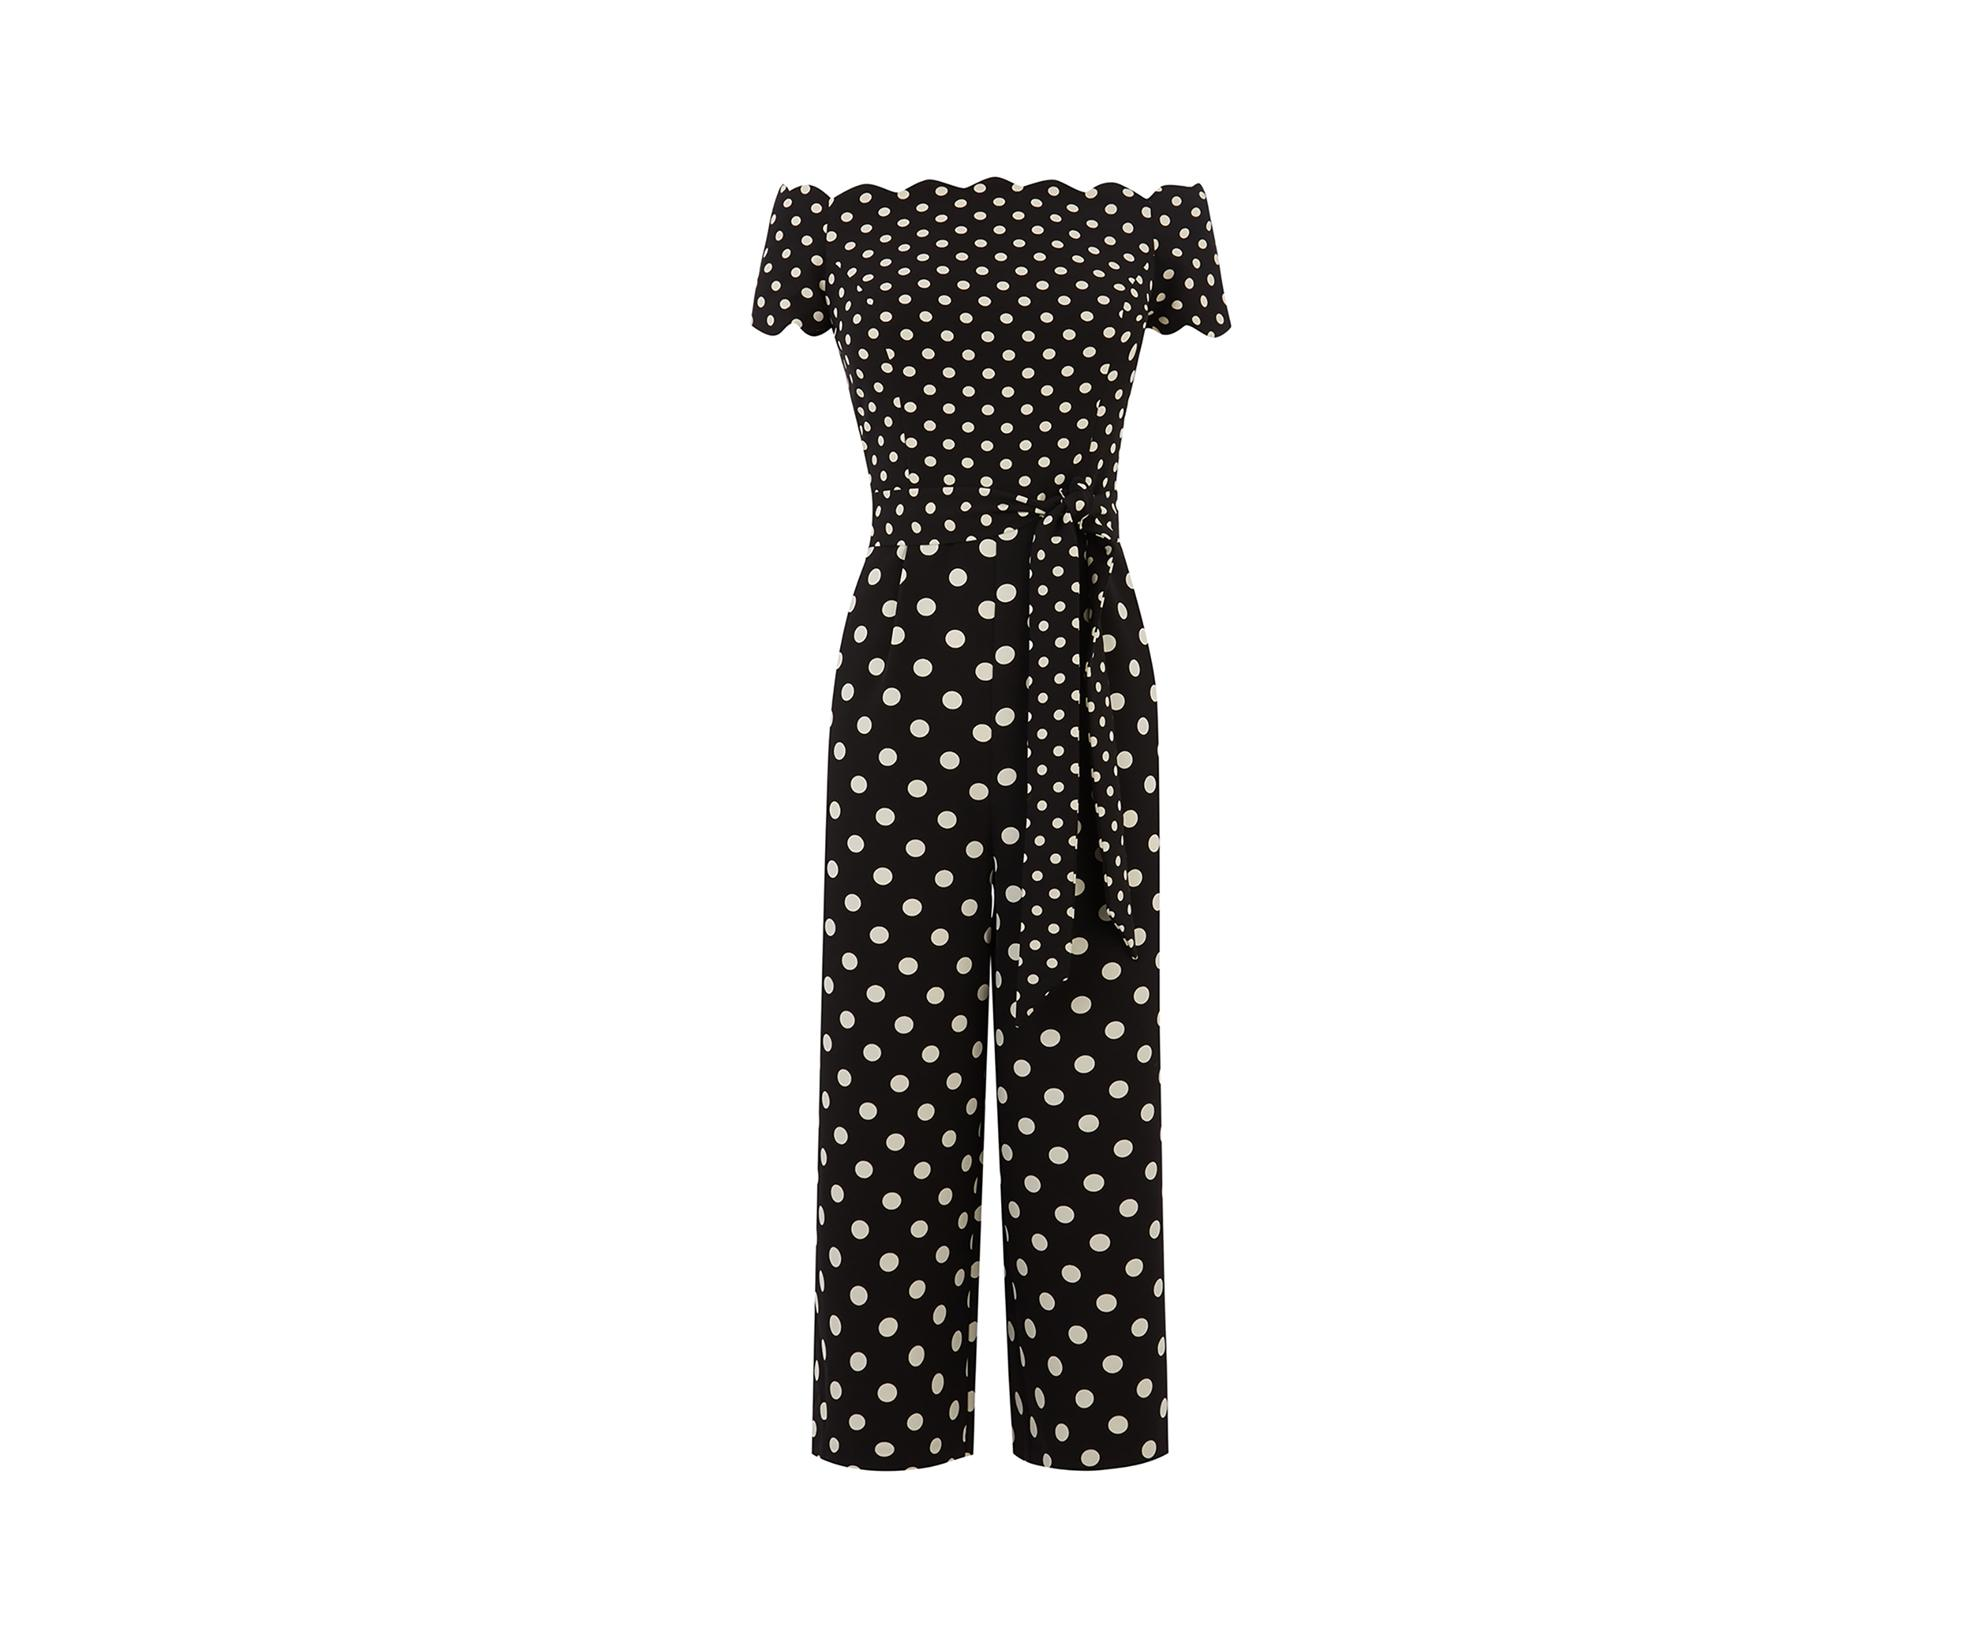 bfe054aa6c Oasis - Black Spot Patched Jumpsuit - Lyst. View fullscreen